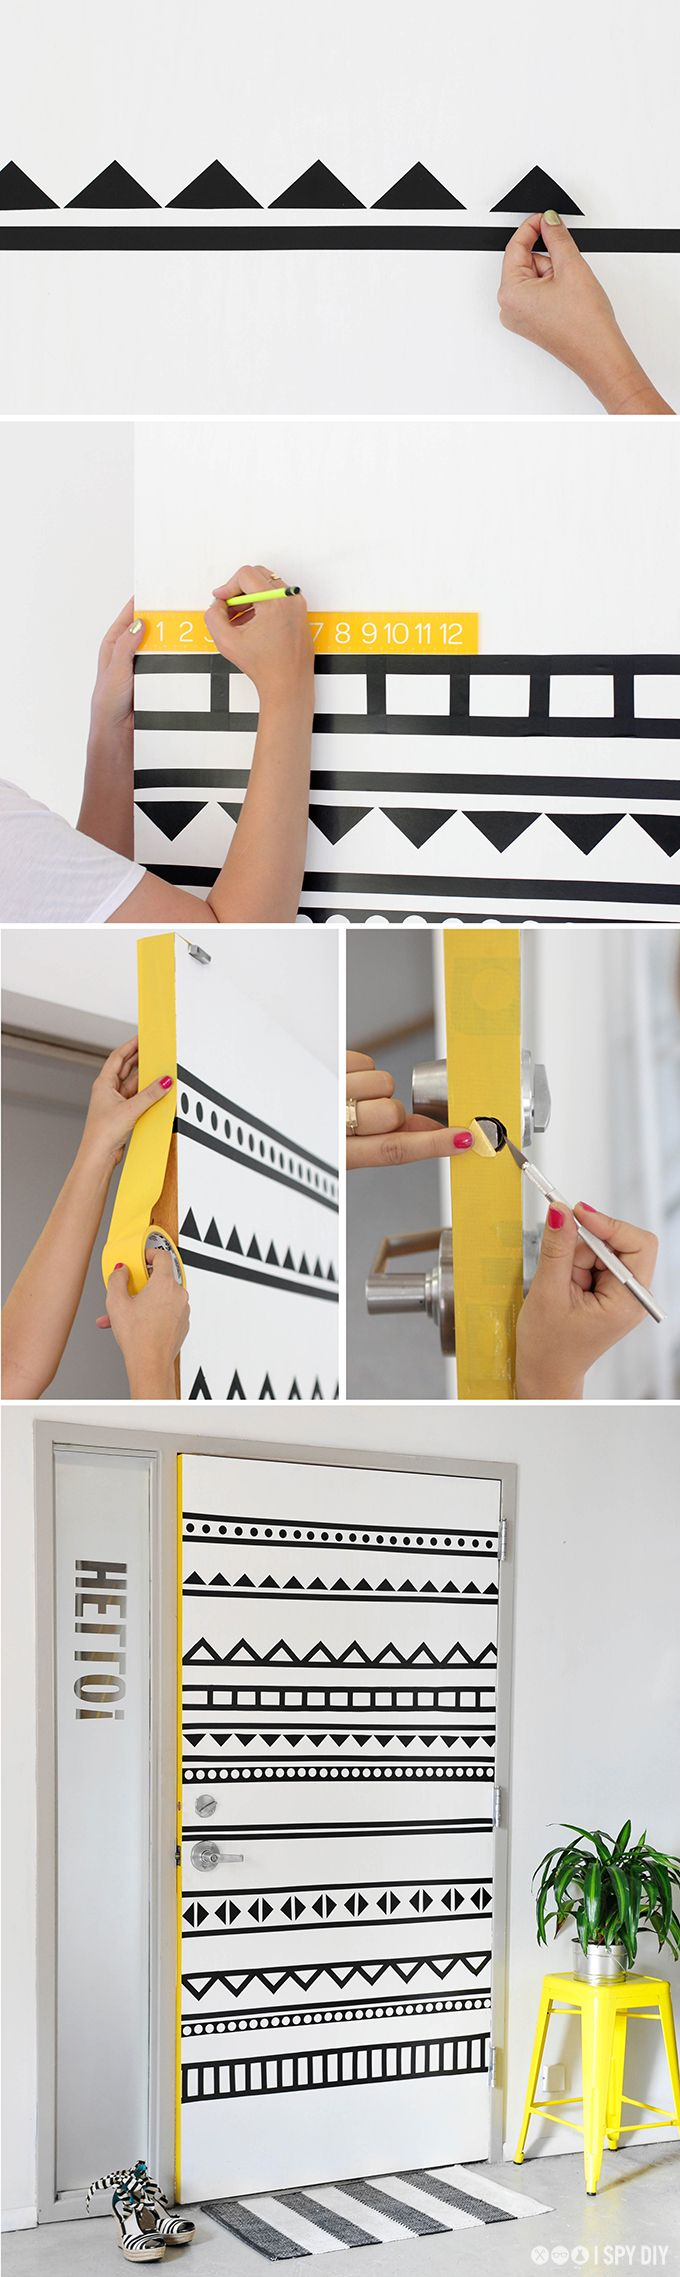 washi tape door